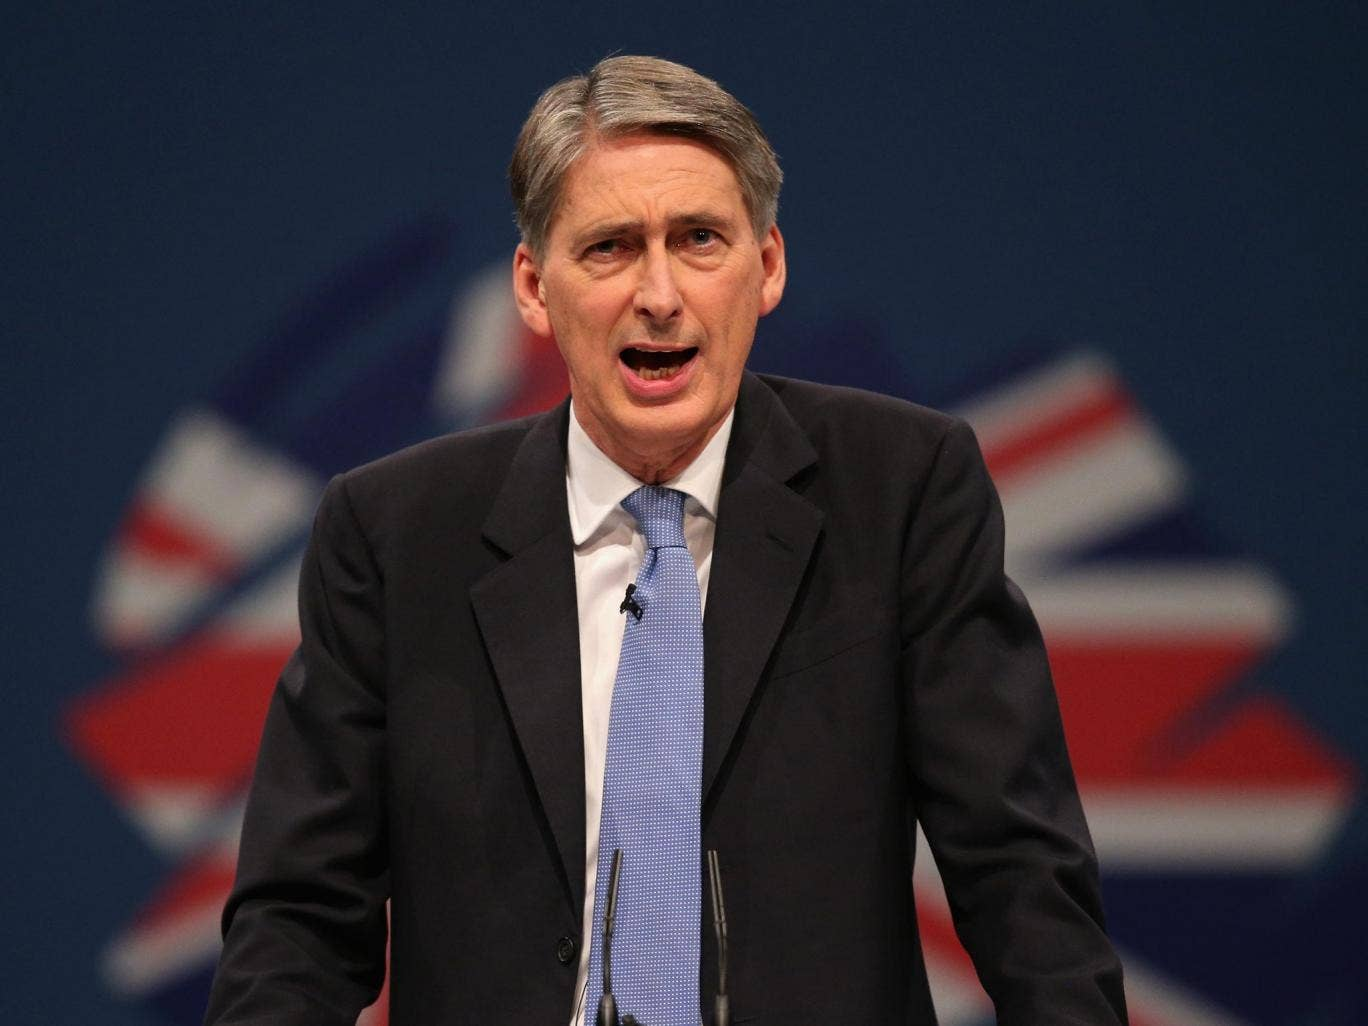 Defence Secretary Philip Hammond says that Scotland will not vote to leave the UK